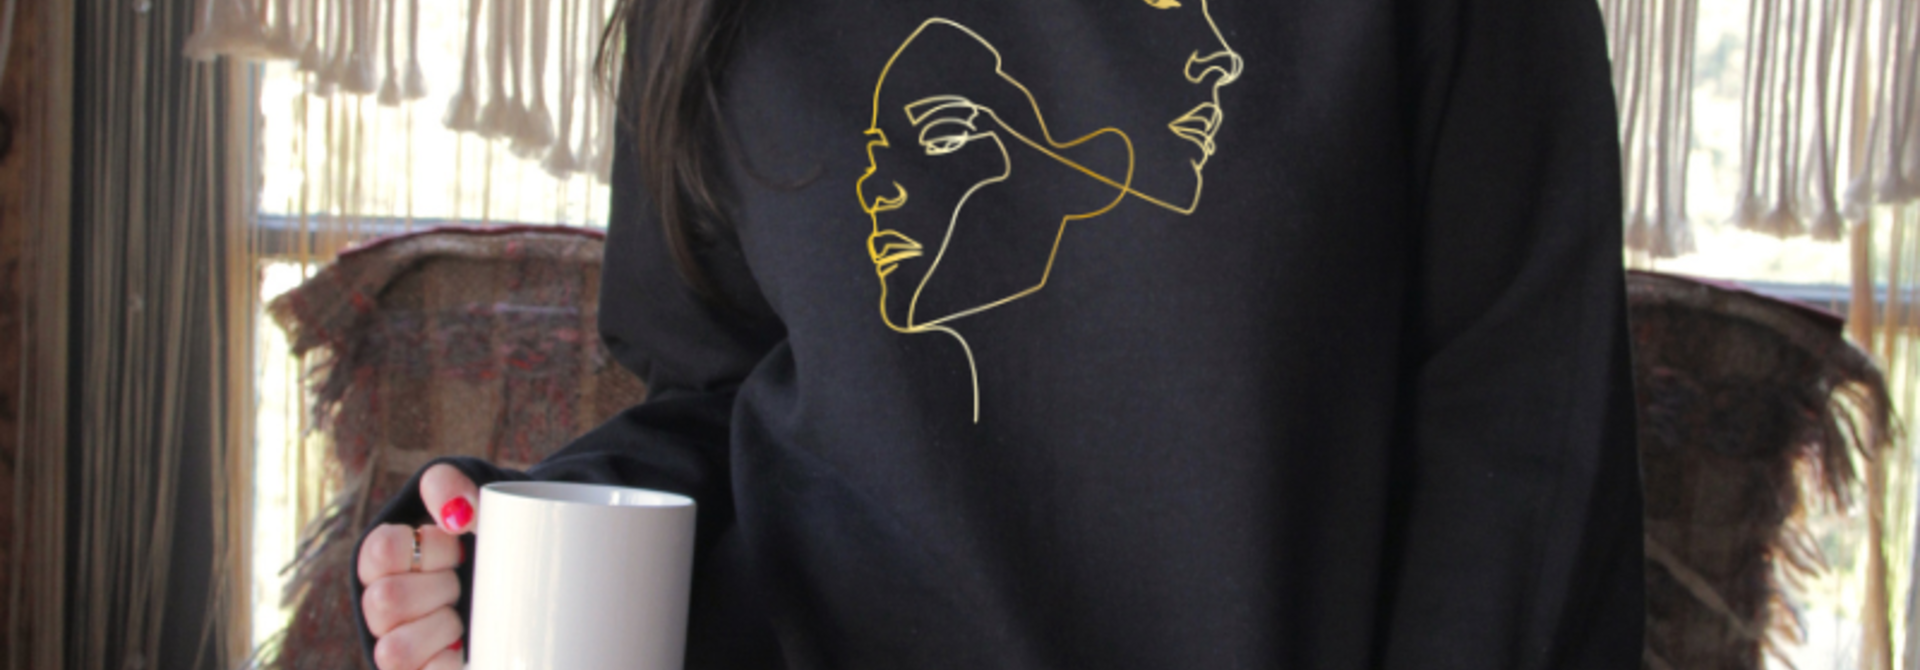 Sweater 'Faces' - black & gold | Art Collection